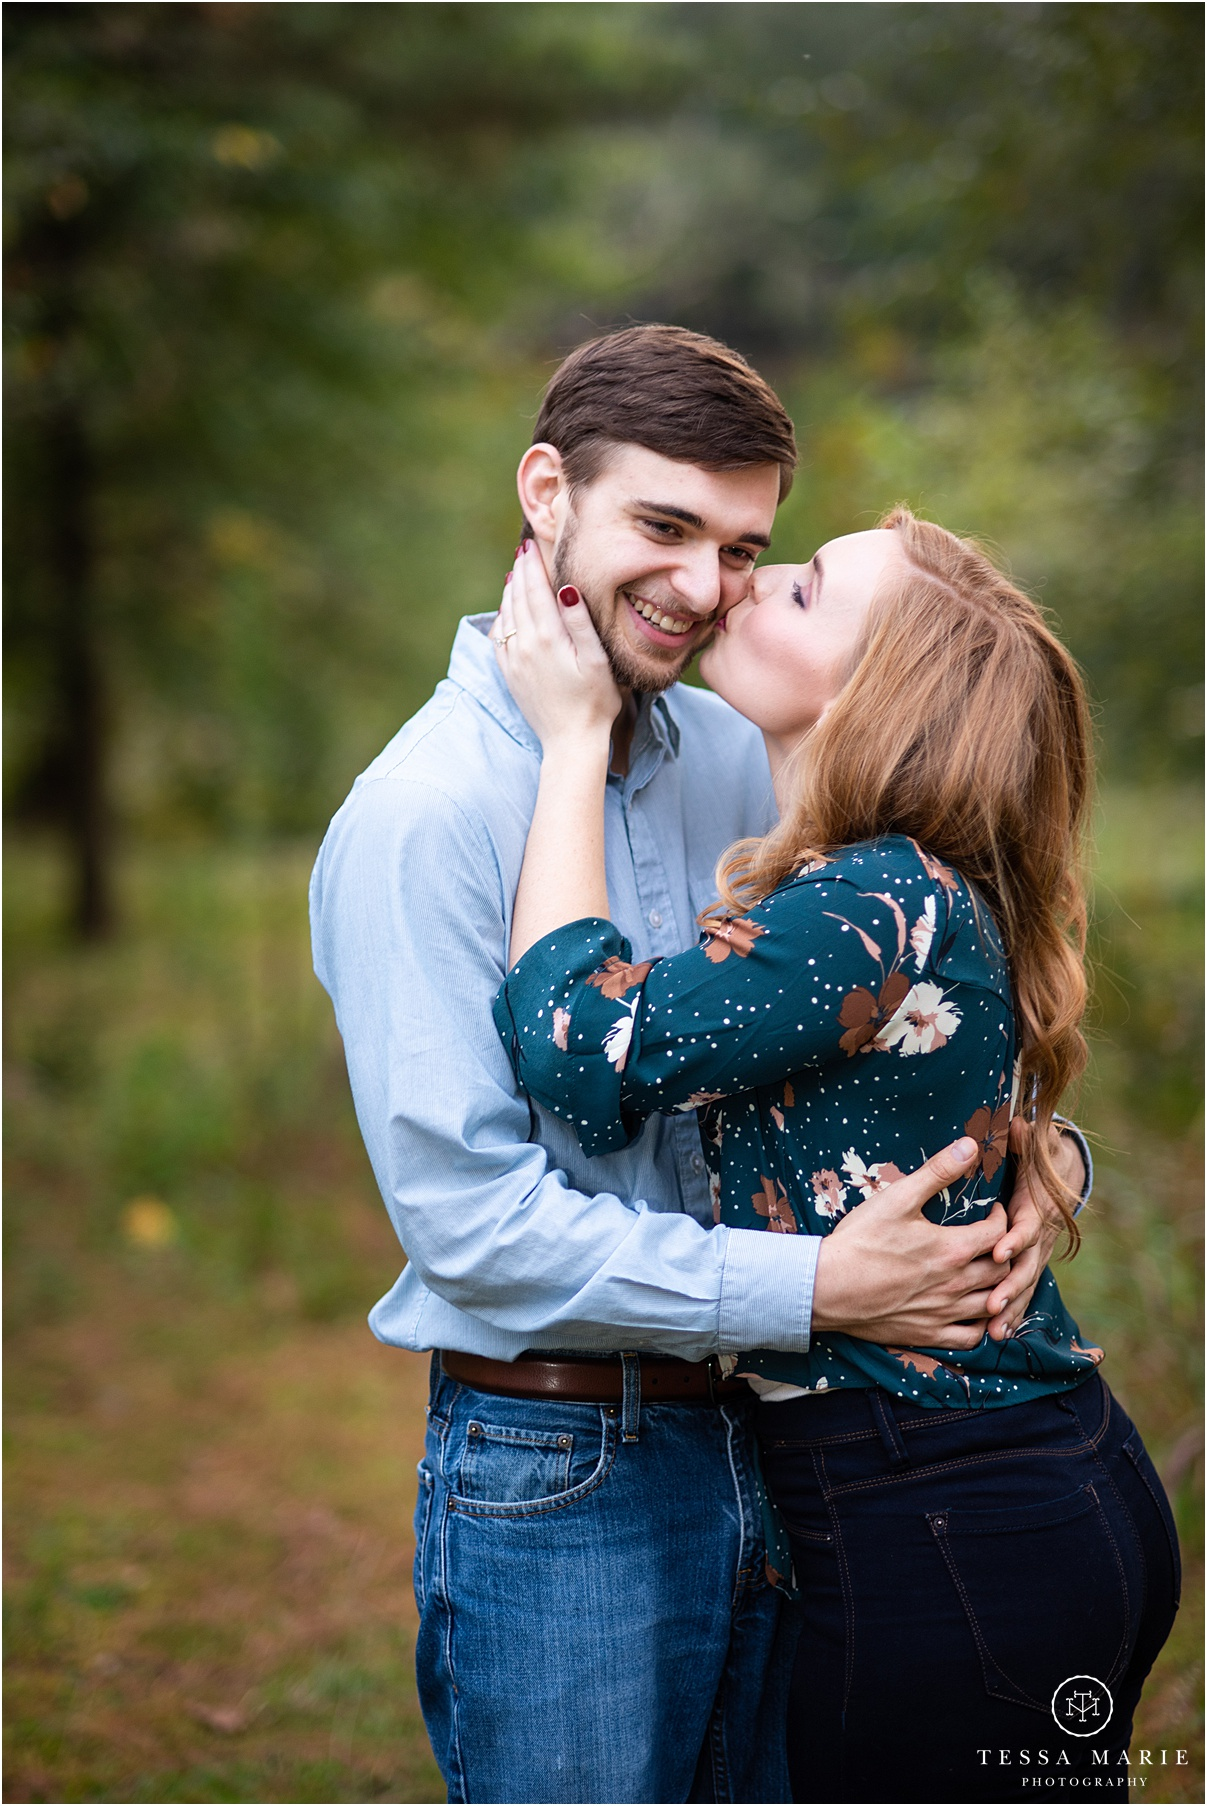 Tessa_marie_photography_wedding_photographer_engagement_pictures_river_engagement_0021.jpg